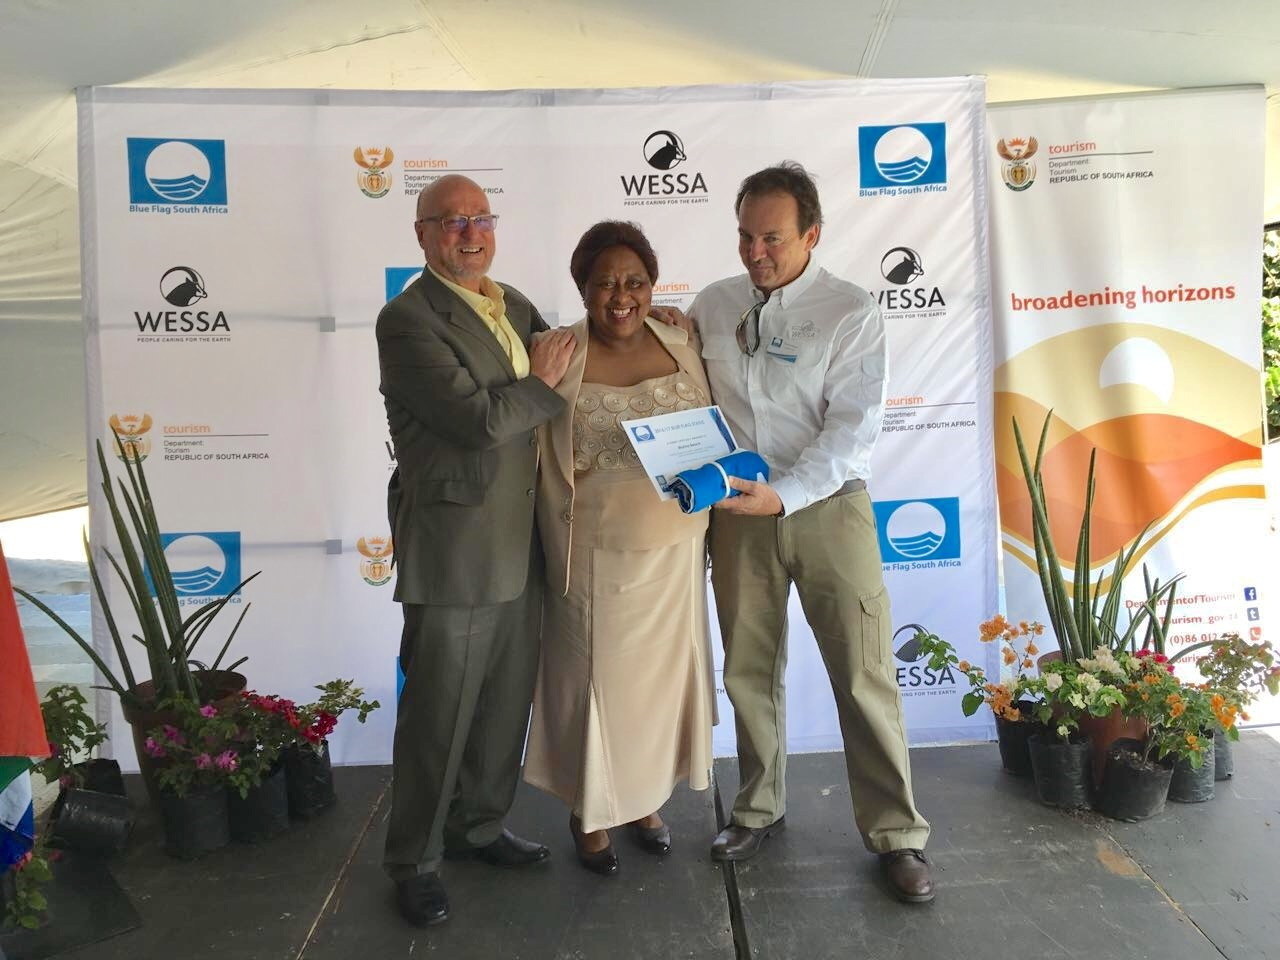 Figure          SEQ Figure \* ARABIC      1      : The mayor of Ray Nkonyeni Municipality, Nomusa Mqwebu (Centre) receiving the Blue Flag awards for all seven beaches within the municipality from the Minister of Tourism Dereck Hanekom (Left) and WESSA CEO Dr Thommie Burger (Right).